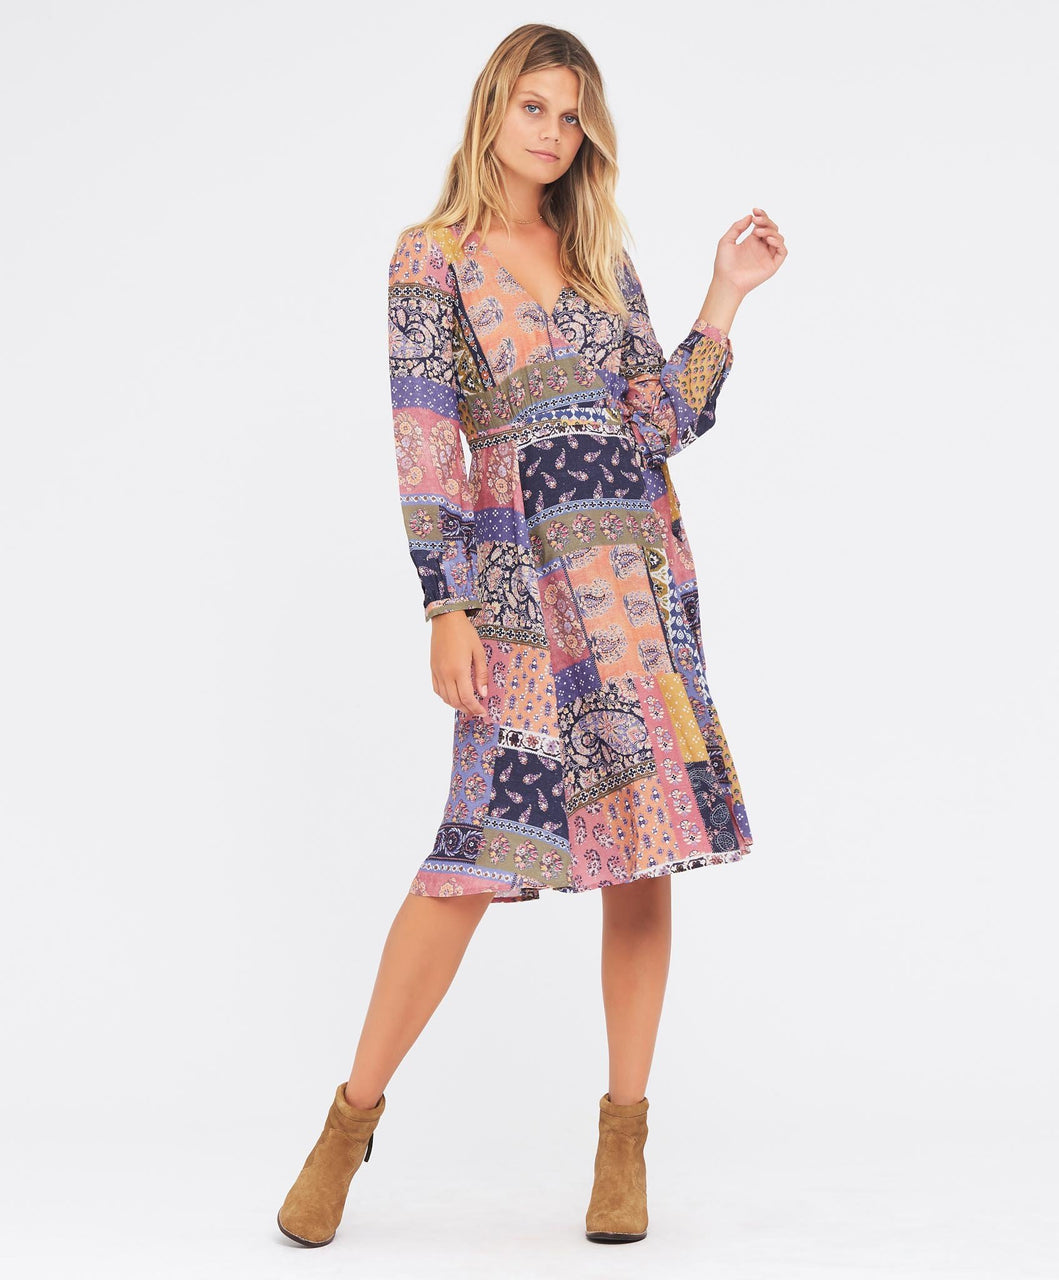 Tigerlily Tejano Dress Multi